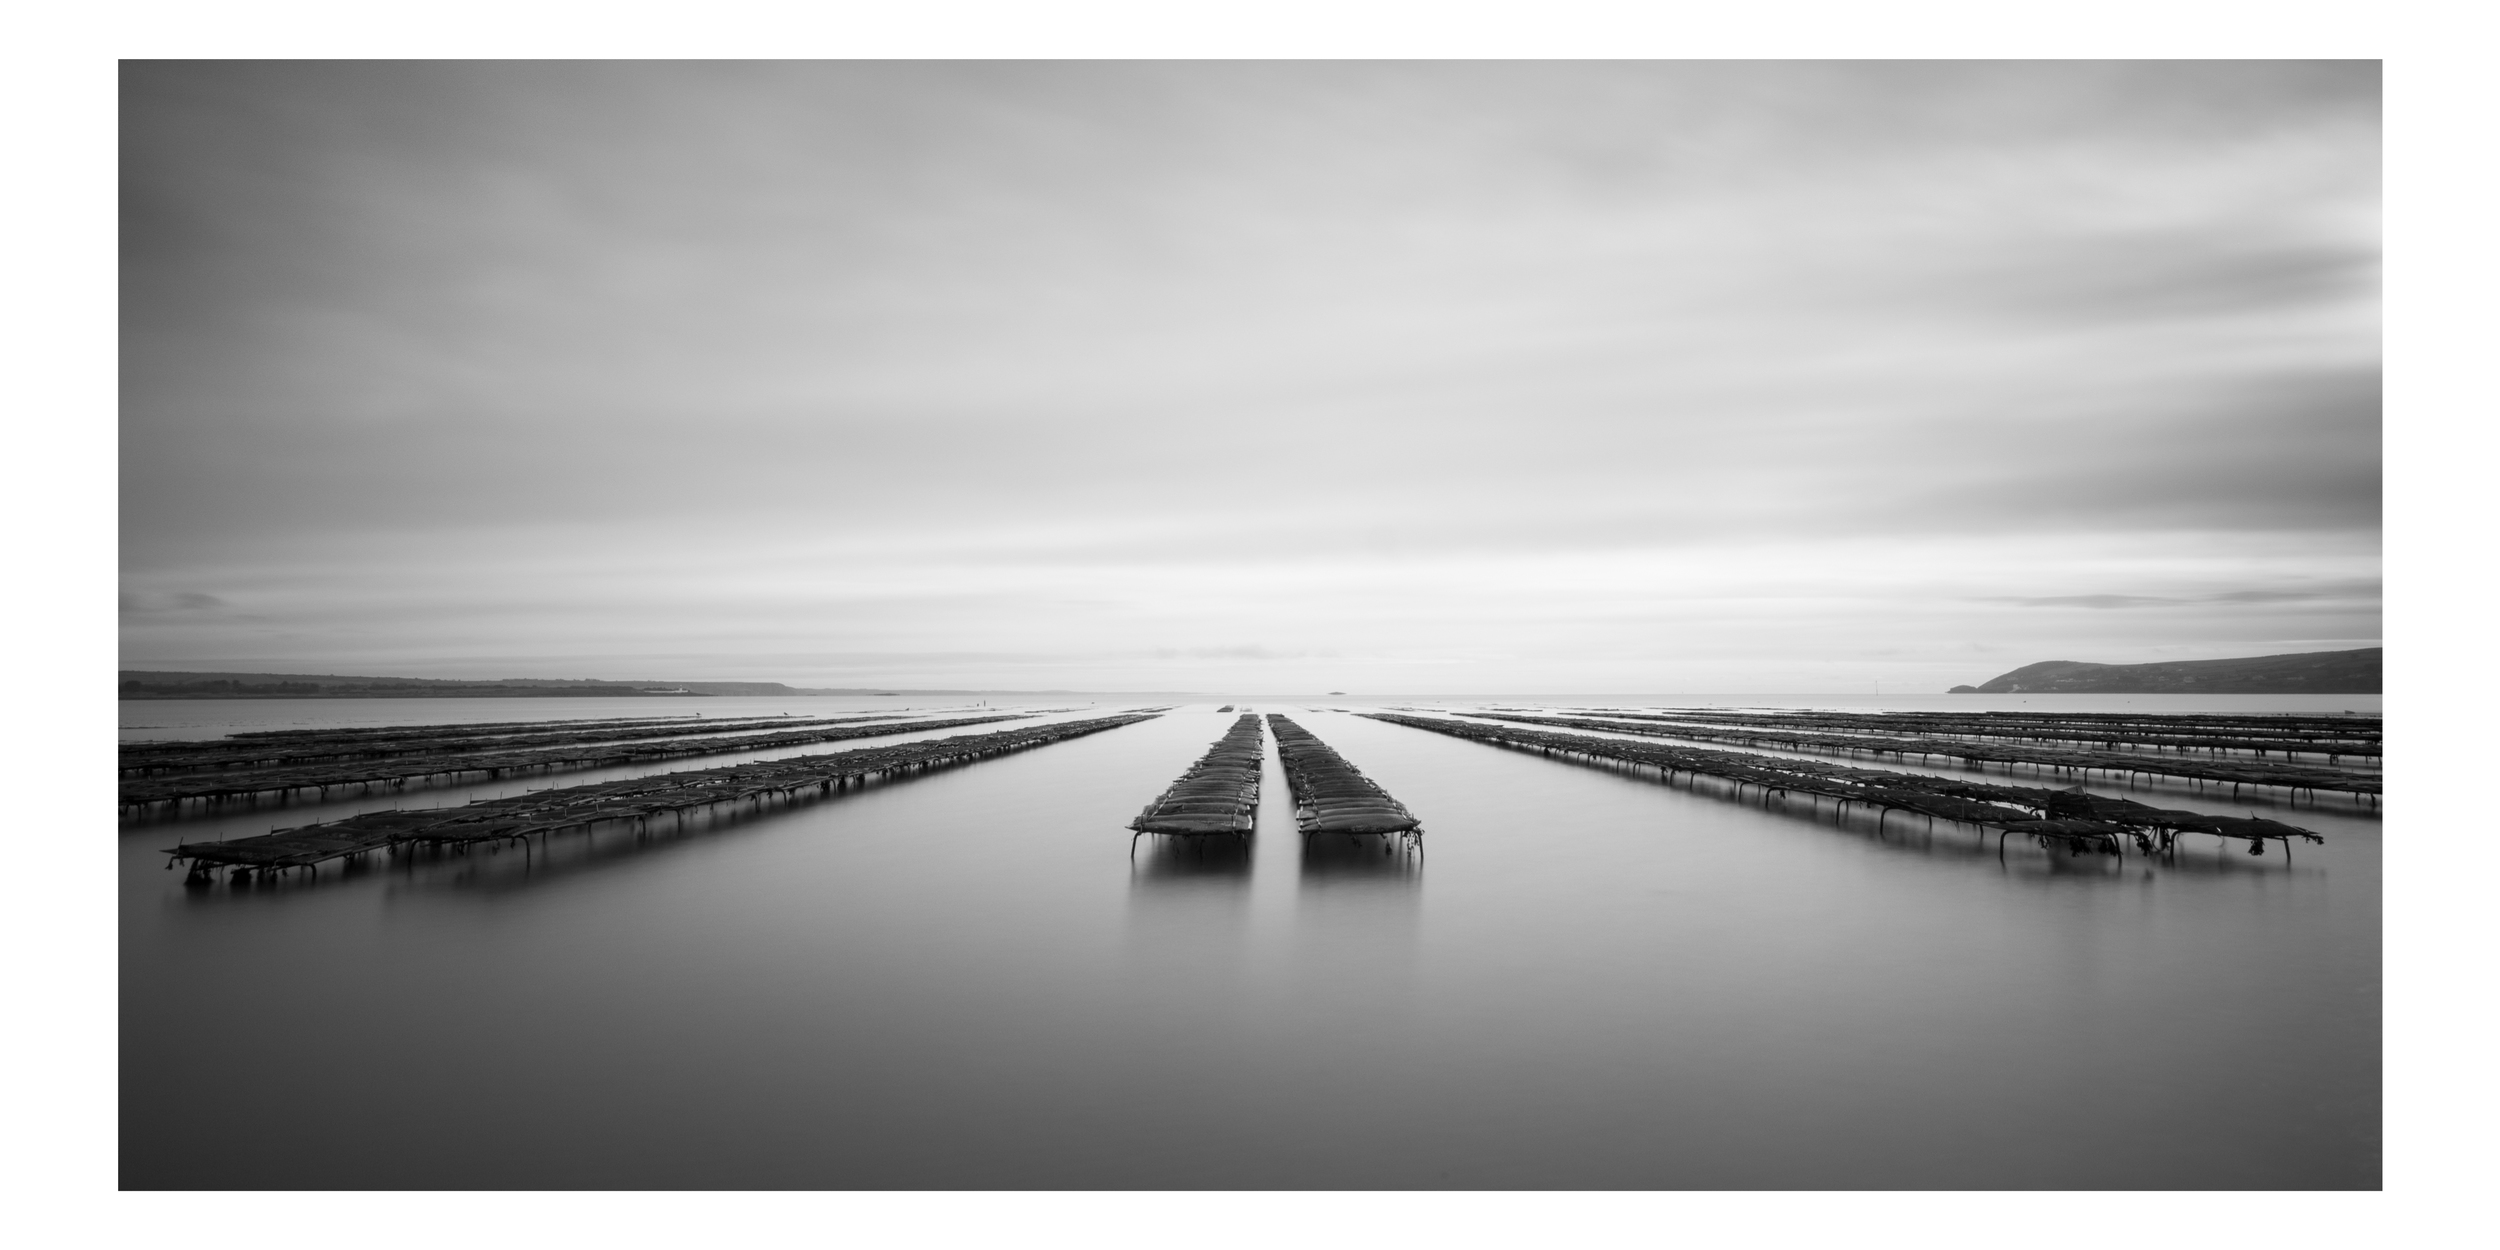 Cunniger Oyster Beds - Taken at Dawn on the Cunniger in Ring, at very low tide